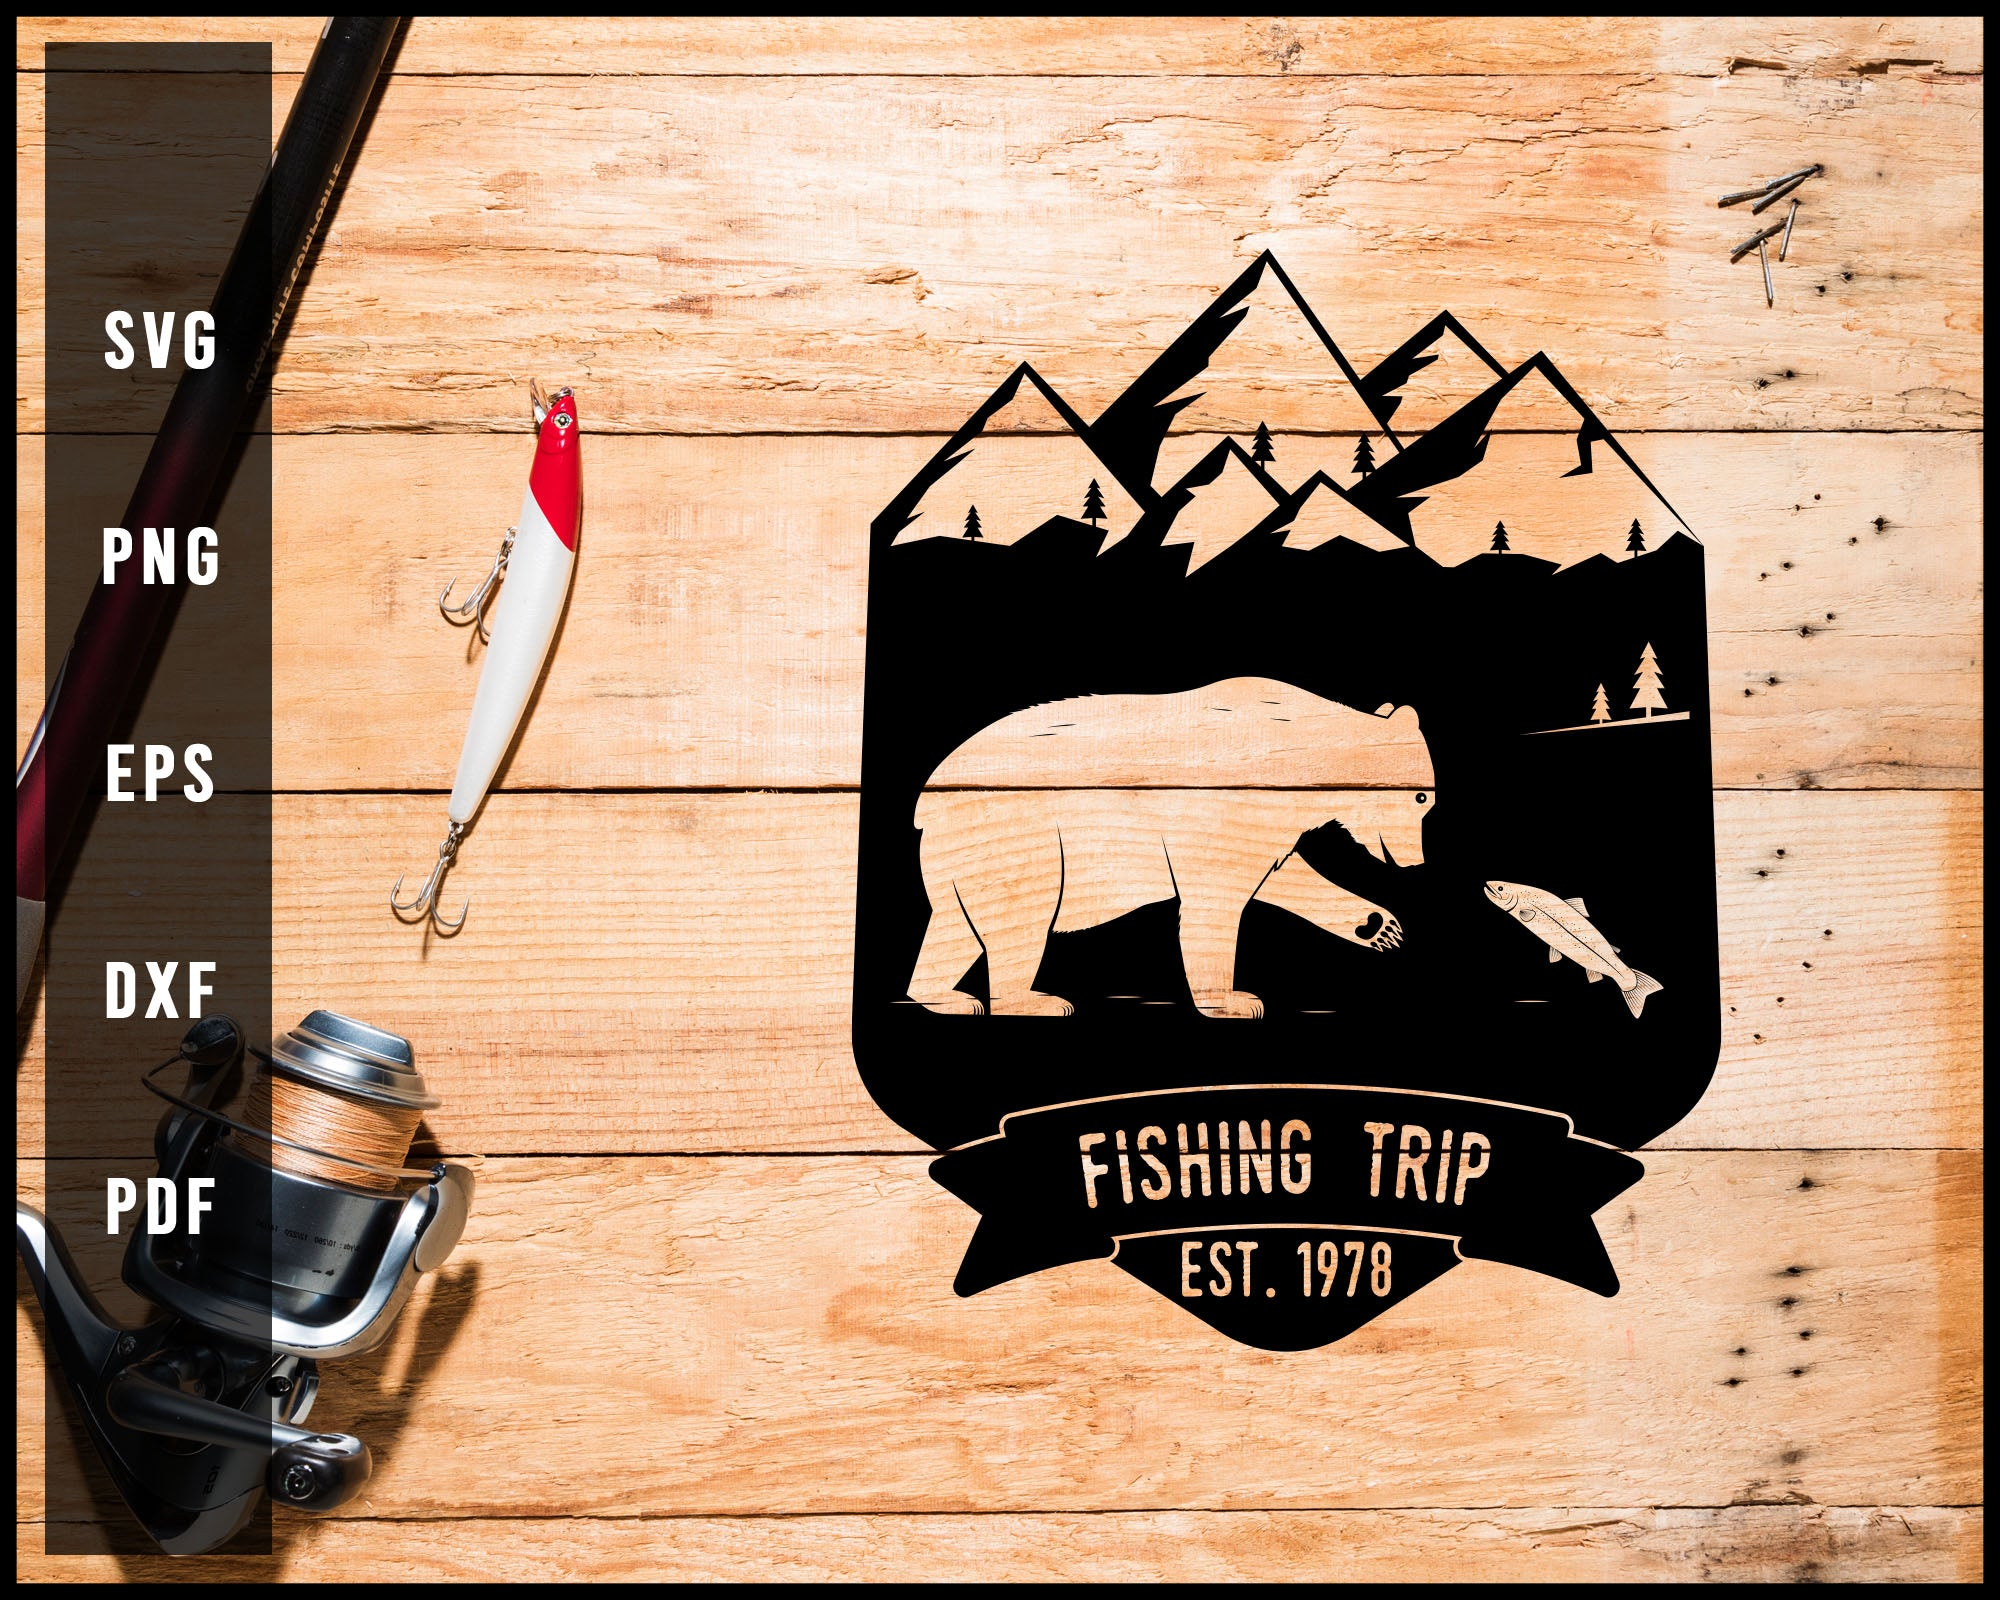 Download Fishing Trip Est 1978 Svg Png Silhouette Designs For Cricut And Print Creativedesignmaker